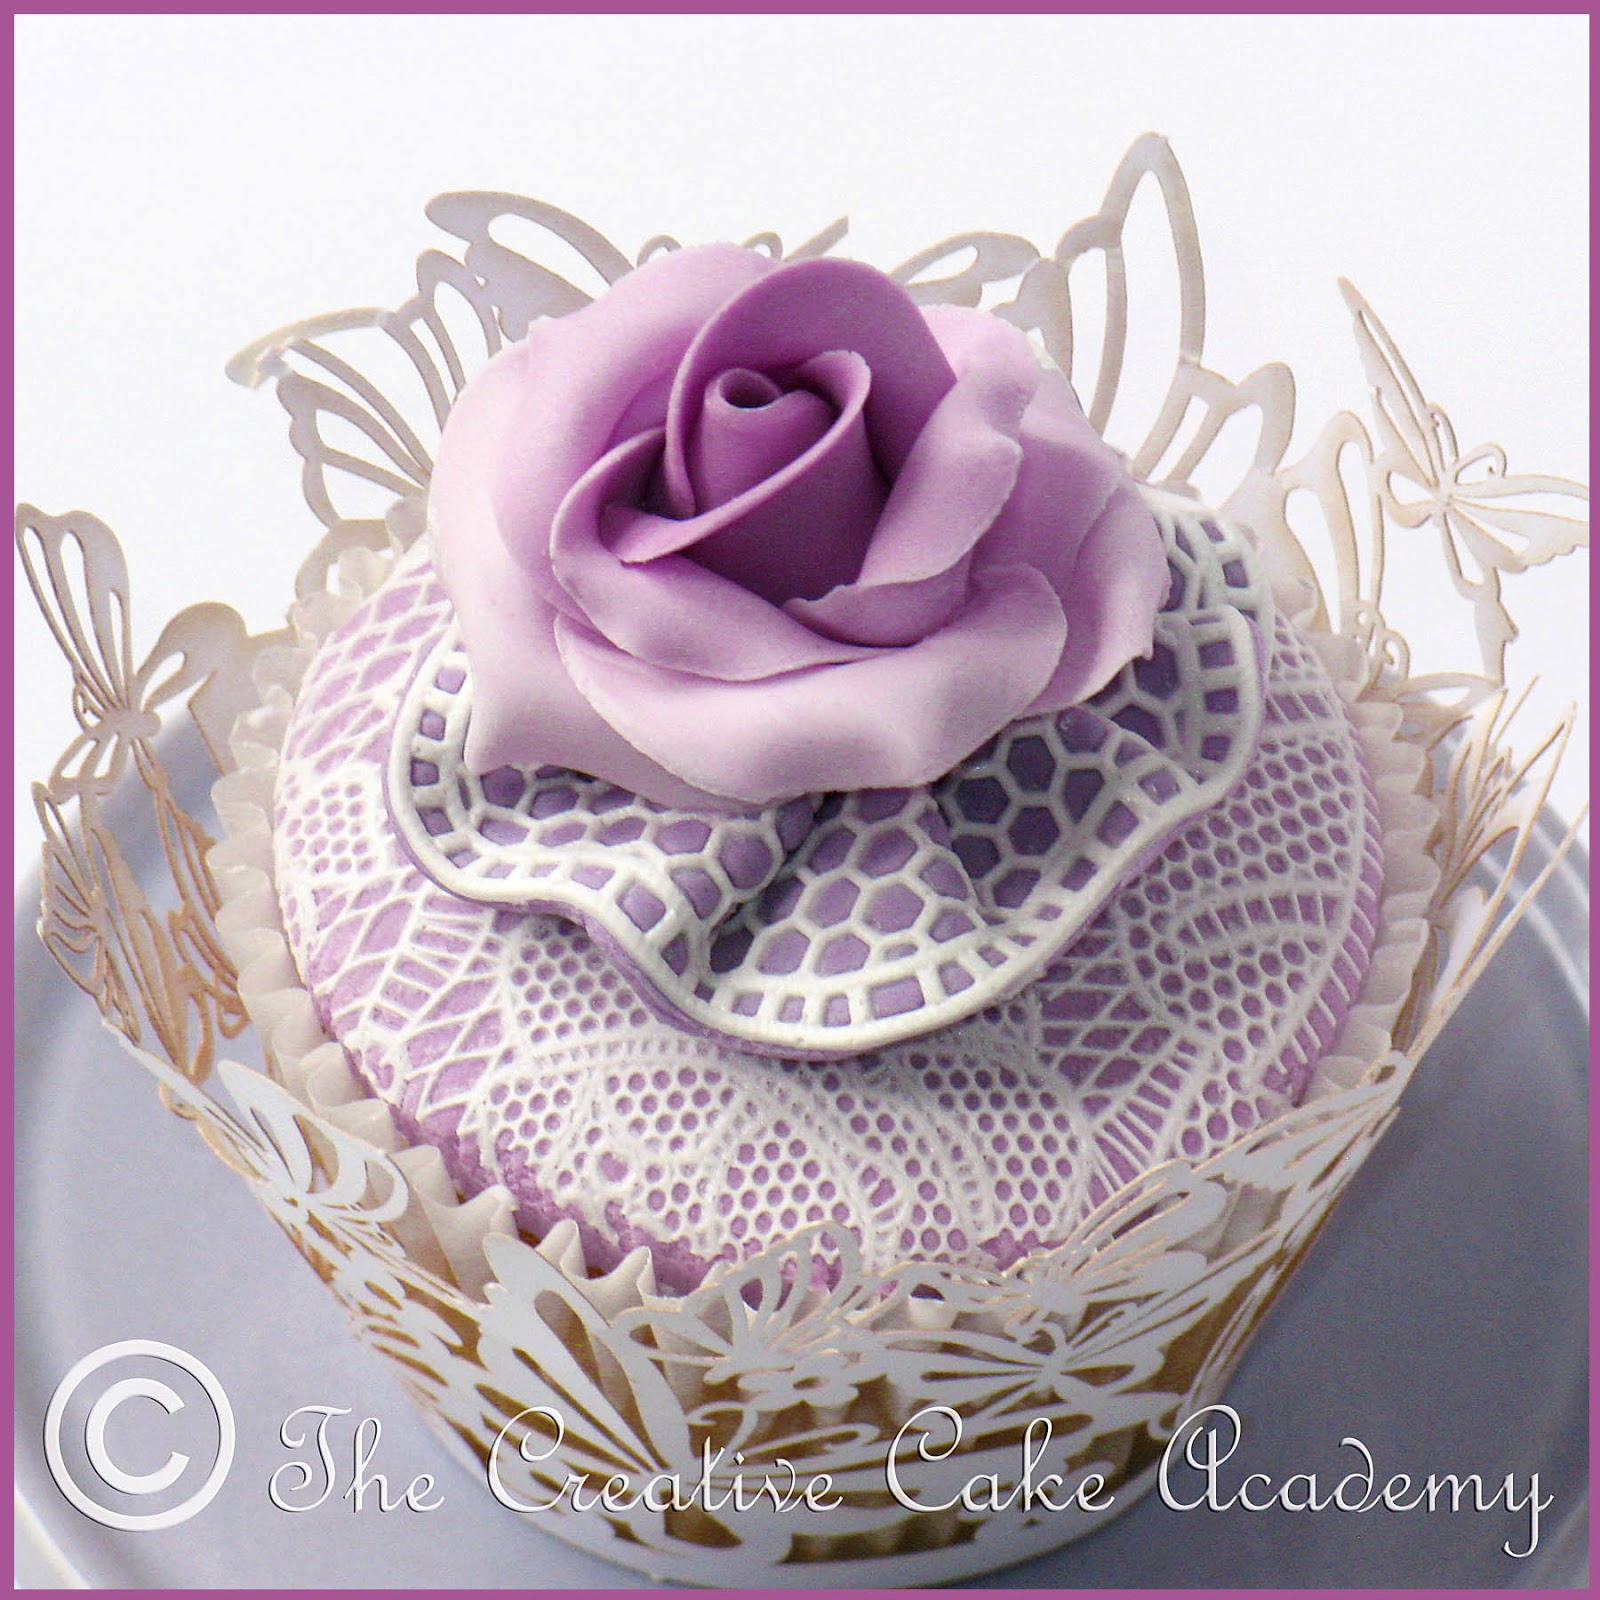 Cake Decor Pearls : The Creative Cake Academy: VINTAGE LACE CUPCAKES ...